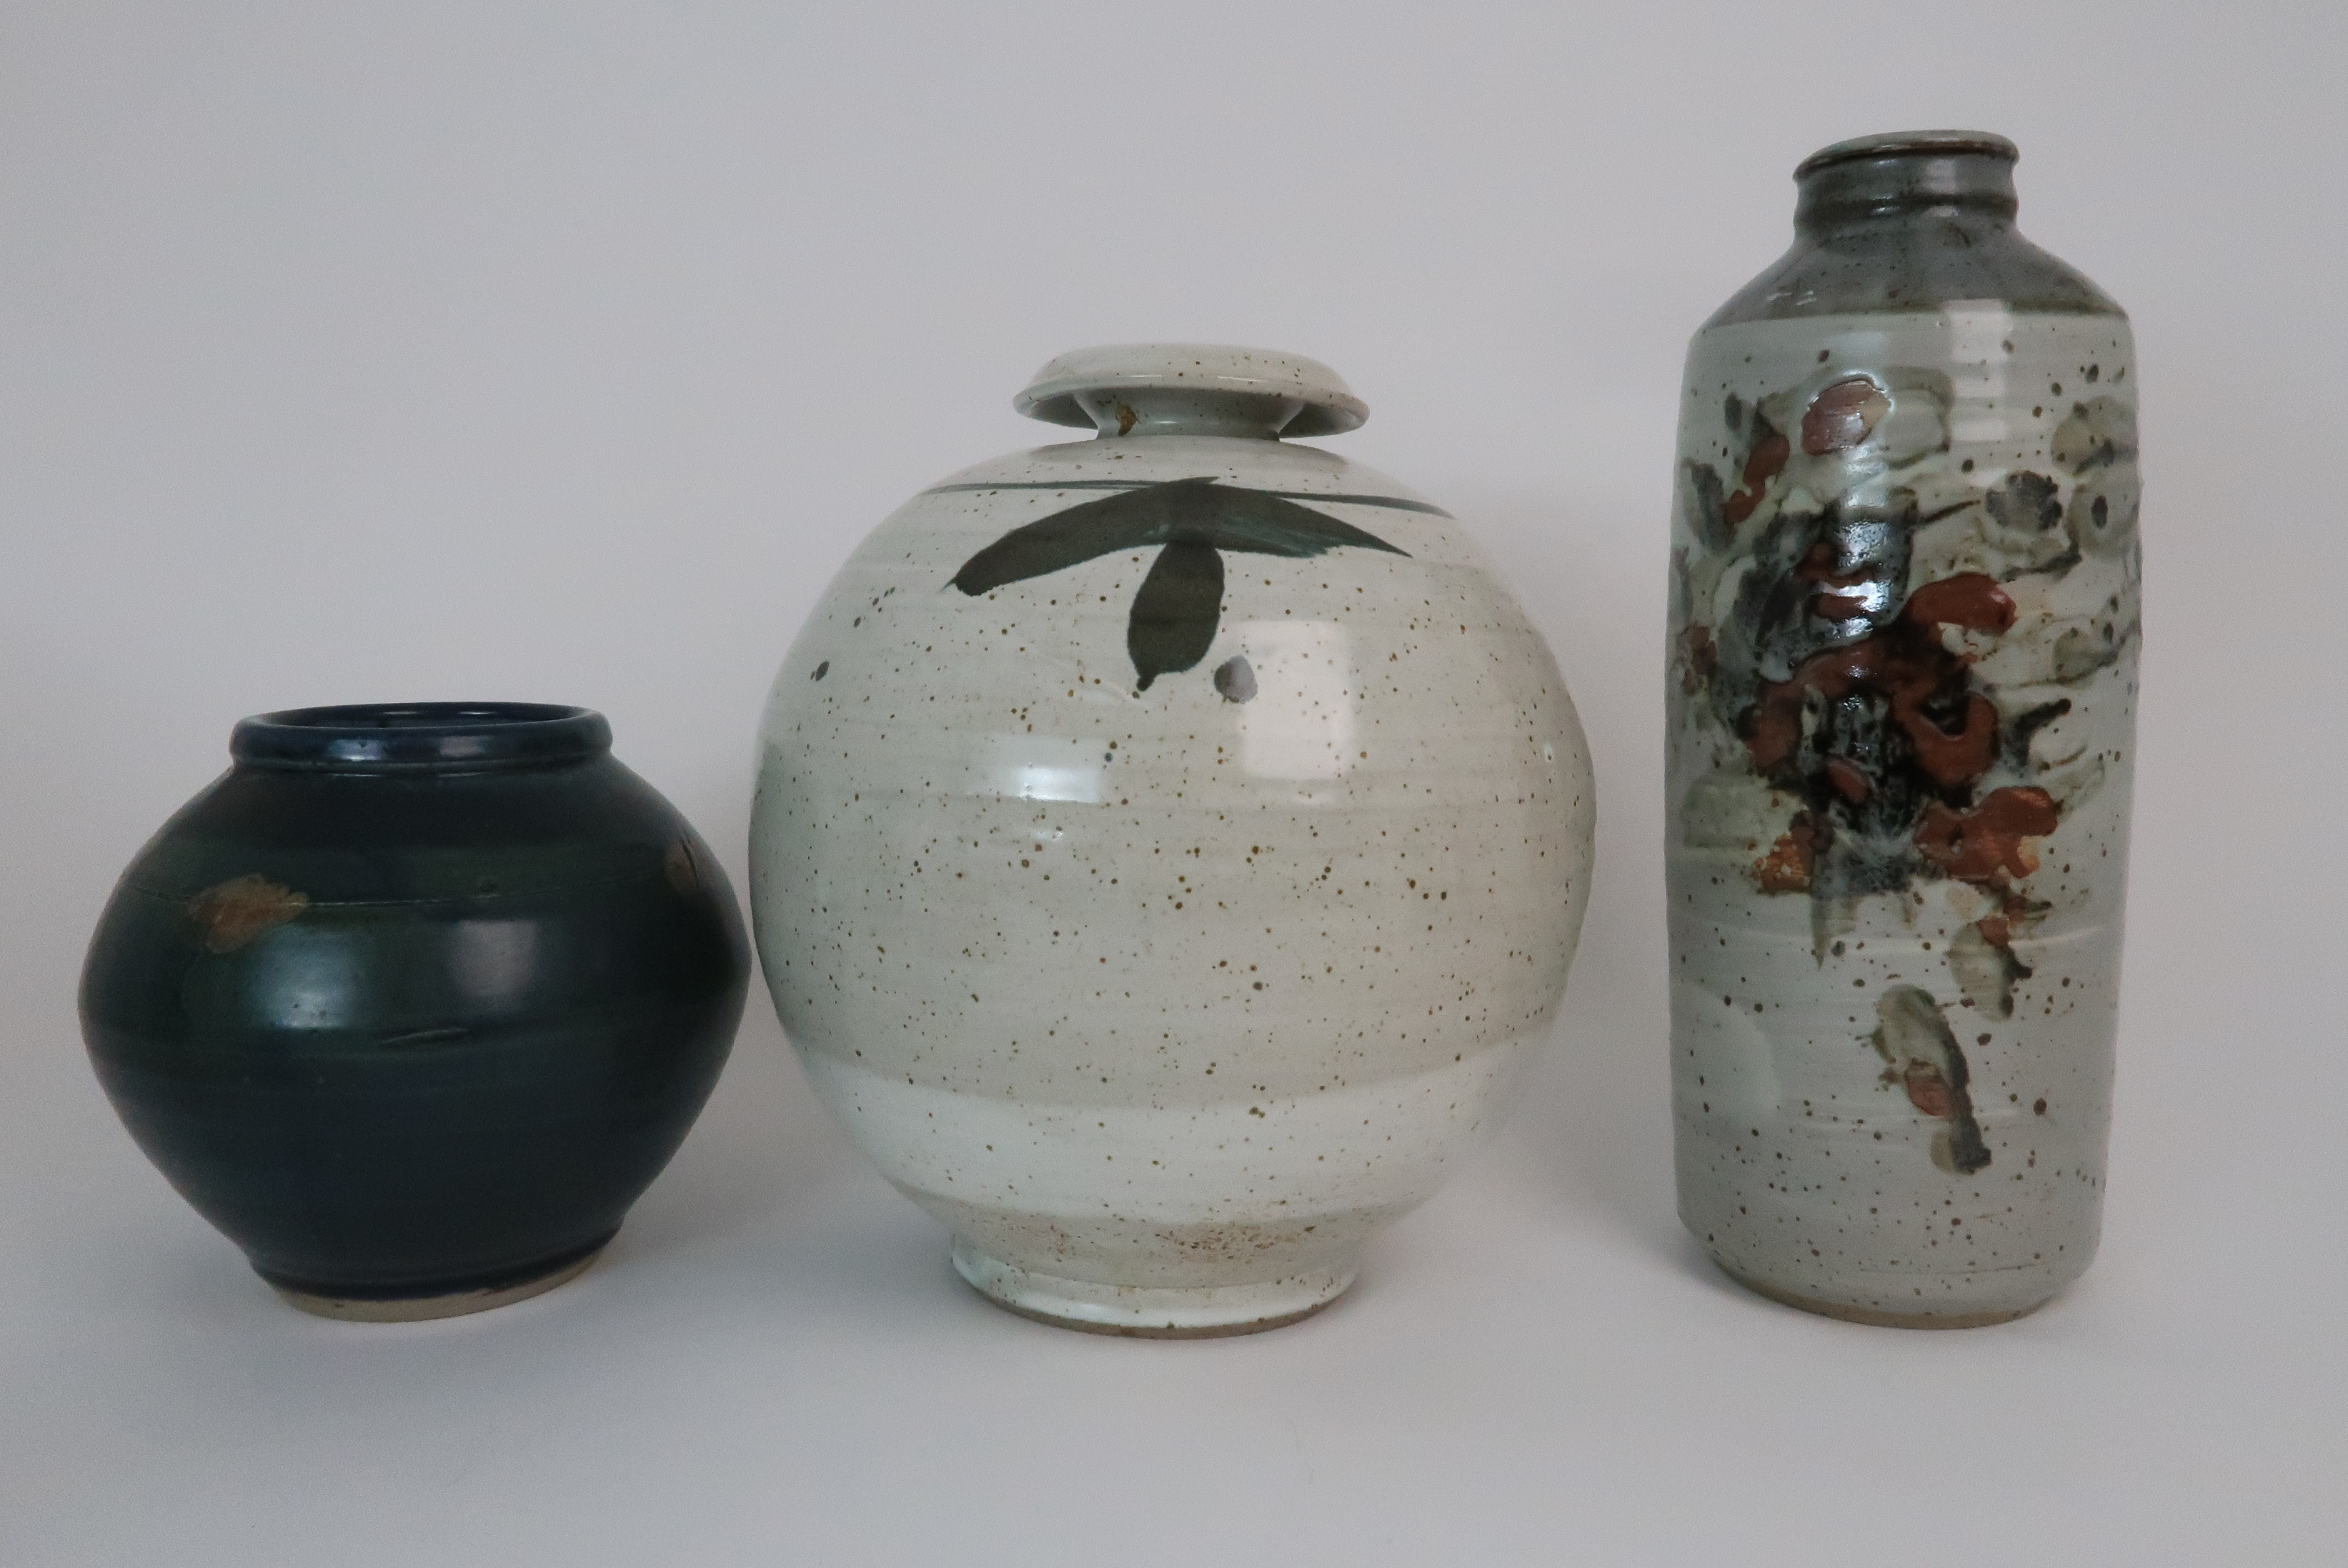 GEORGE SHANKS (1940-2000) - A COLLECTION OF STUDIO POTTERY including a glazed tall vase, 33cm - Image 2 of 15